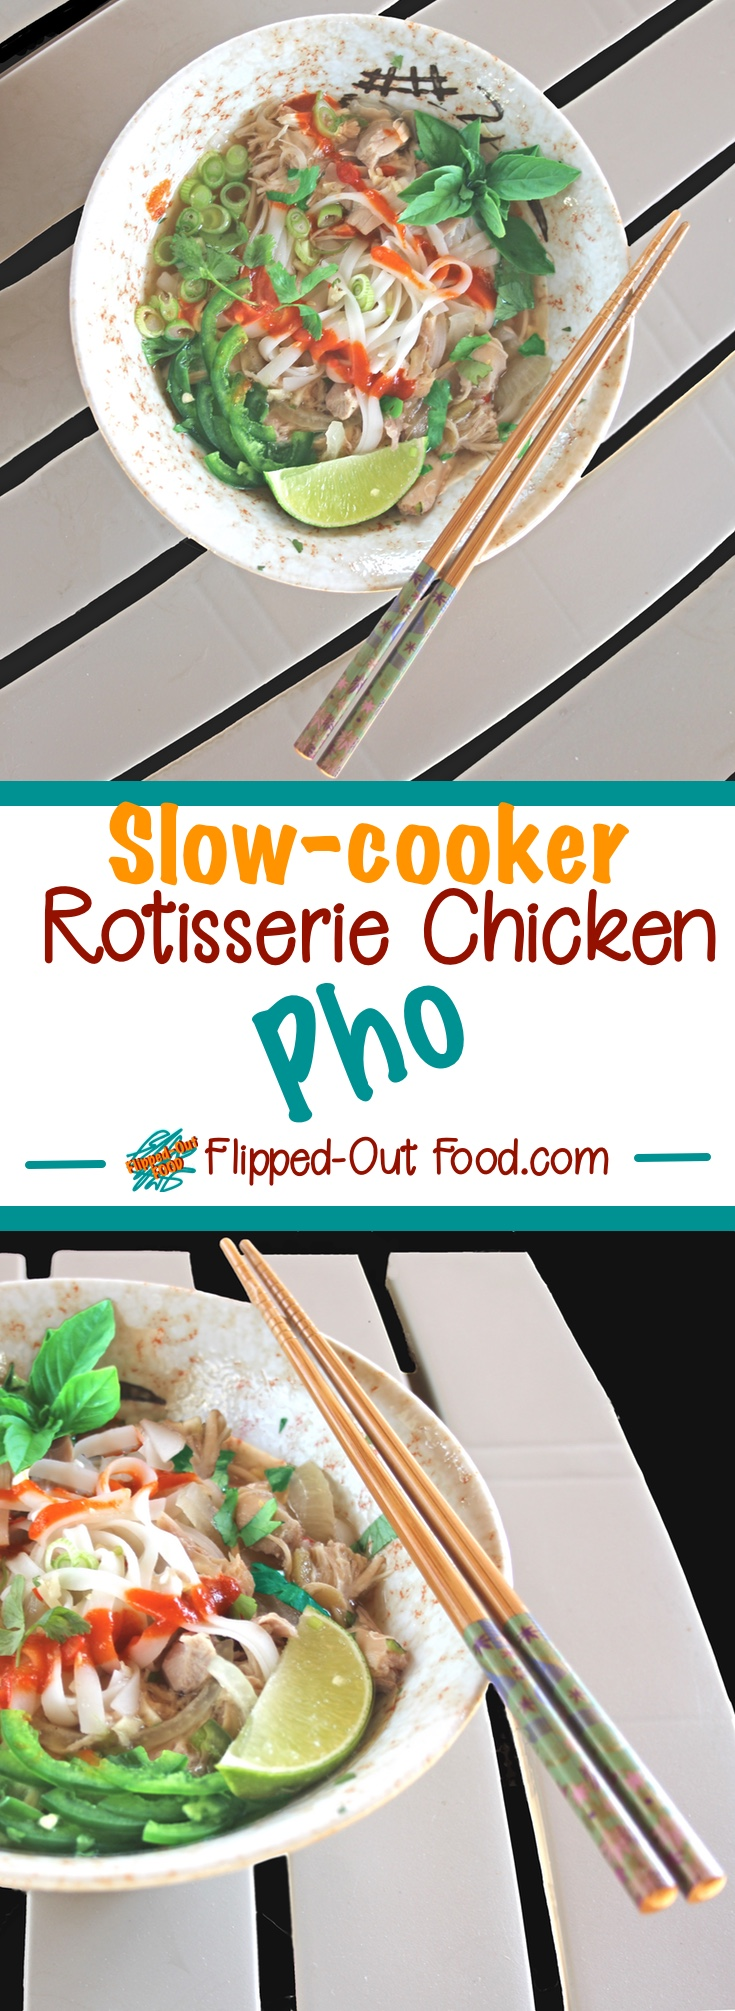 Rotisserie Chicken Pho Ga makes the most of your chicken with a slow simmer in broth, spices, and aromatics to extract amazing flavor from the roasted chicken bones. #pho #vietnamesefood #phoga #chickensoup #slowcooker #crockpot #healthyfood #healthyeating